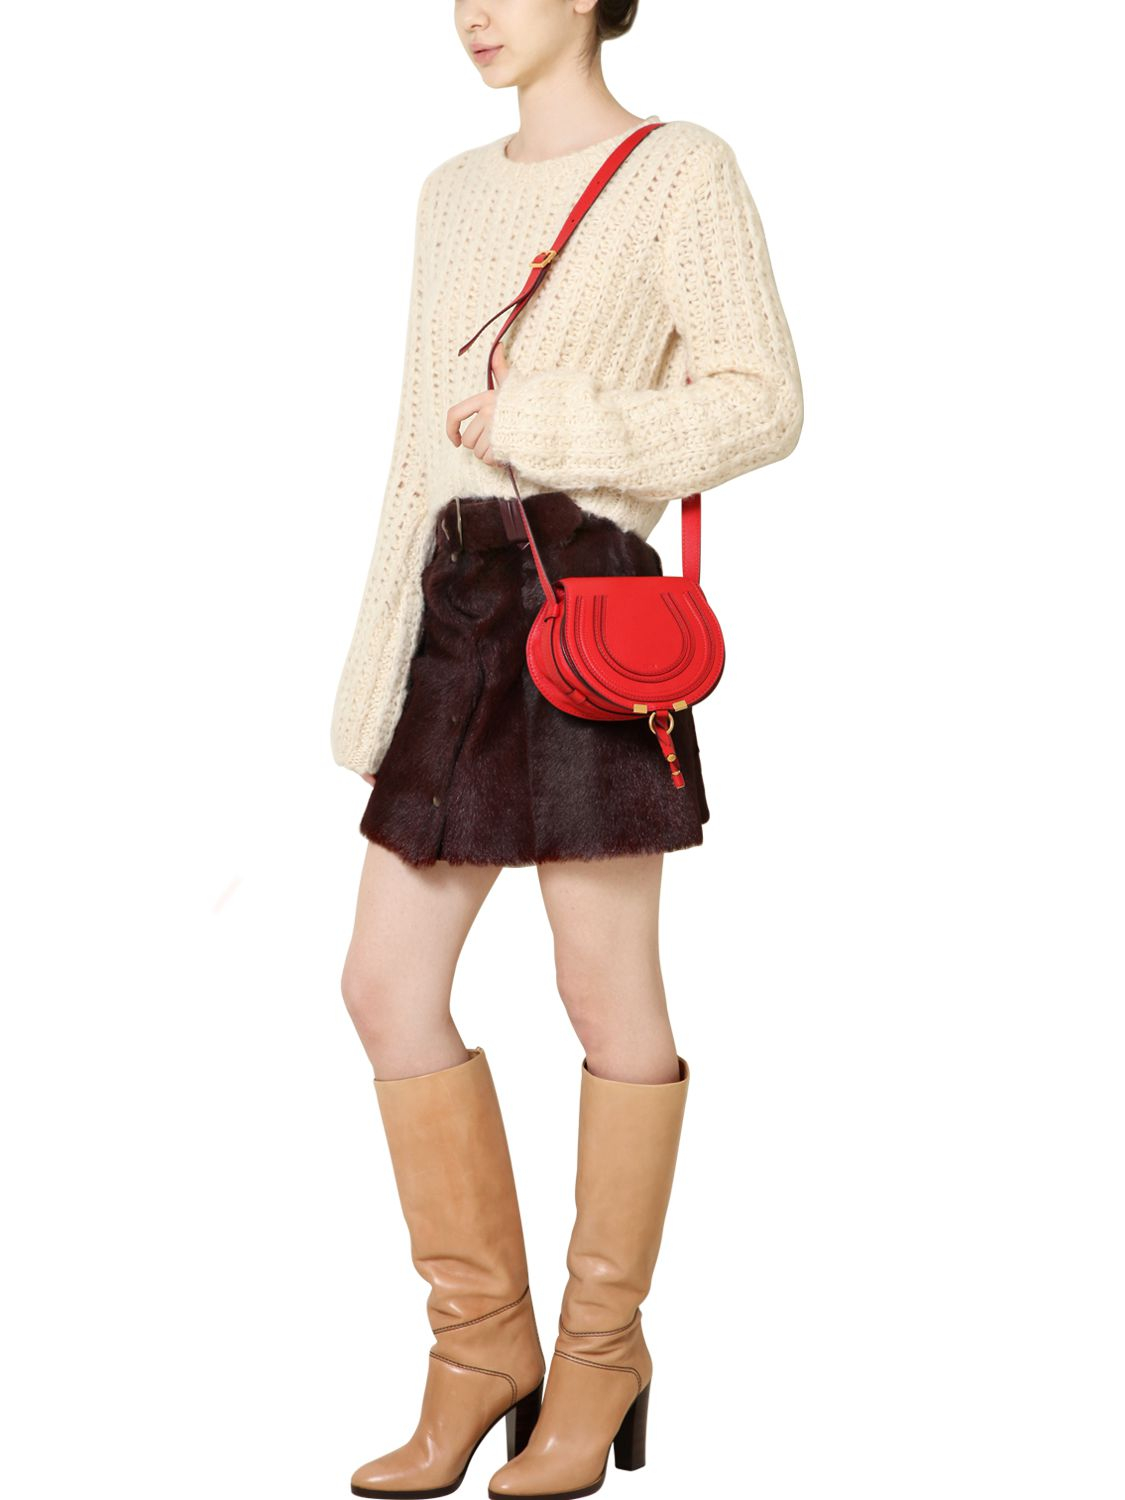 chloe bag - Chlo�� Small Marcie Leather Crossbody Bag in Red (PAPRIKA RED) | Lyst